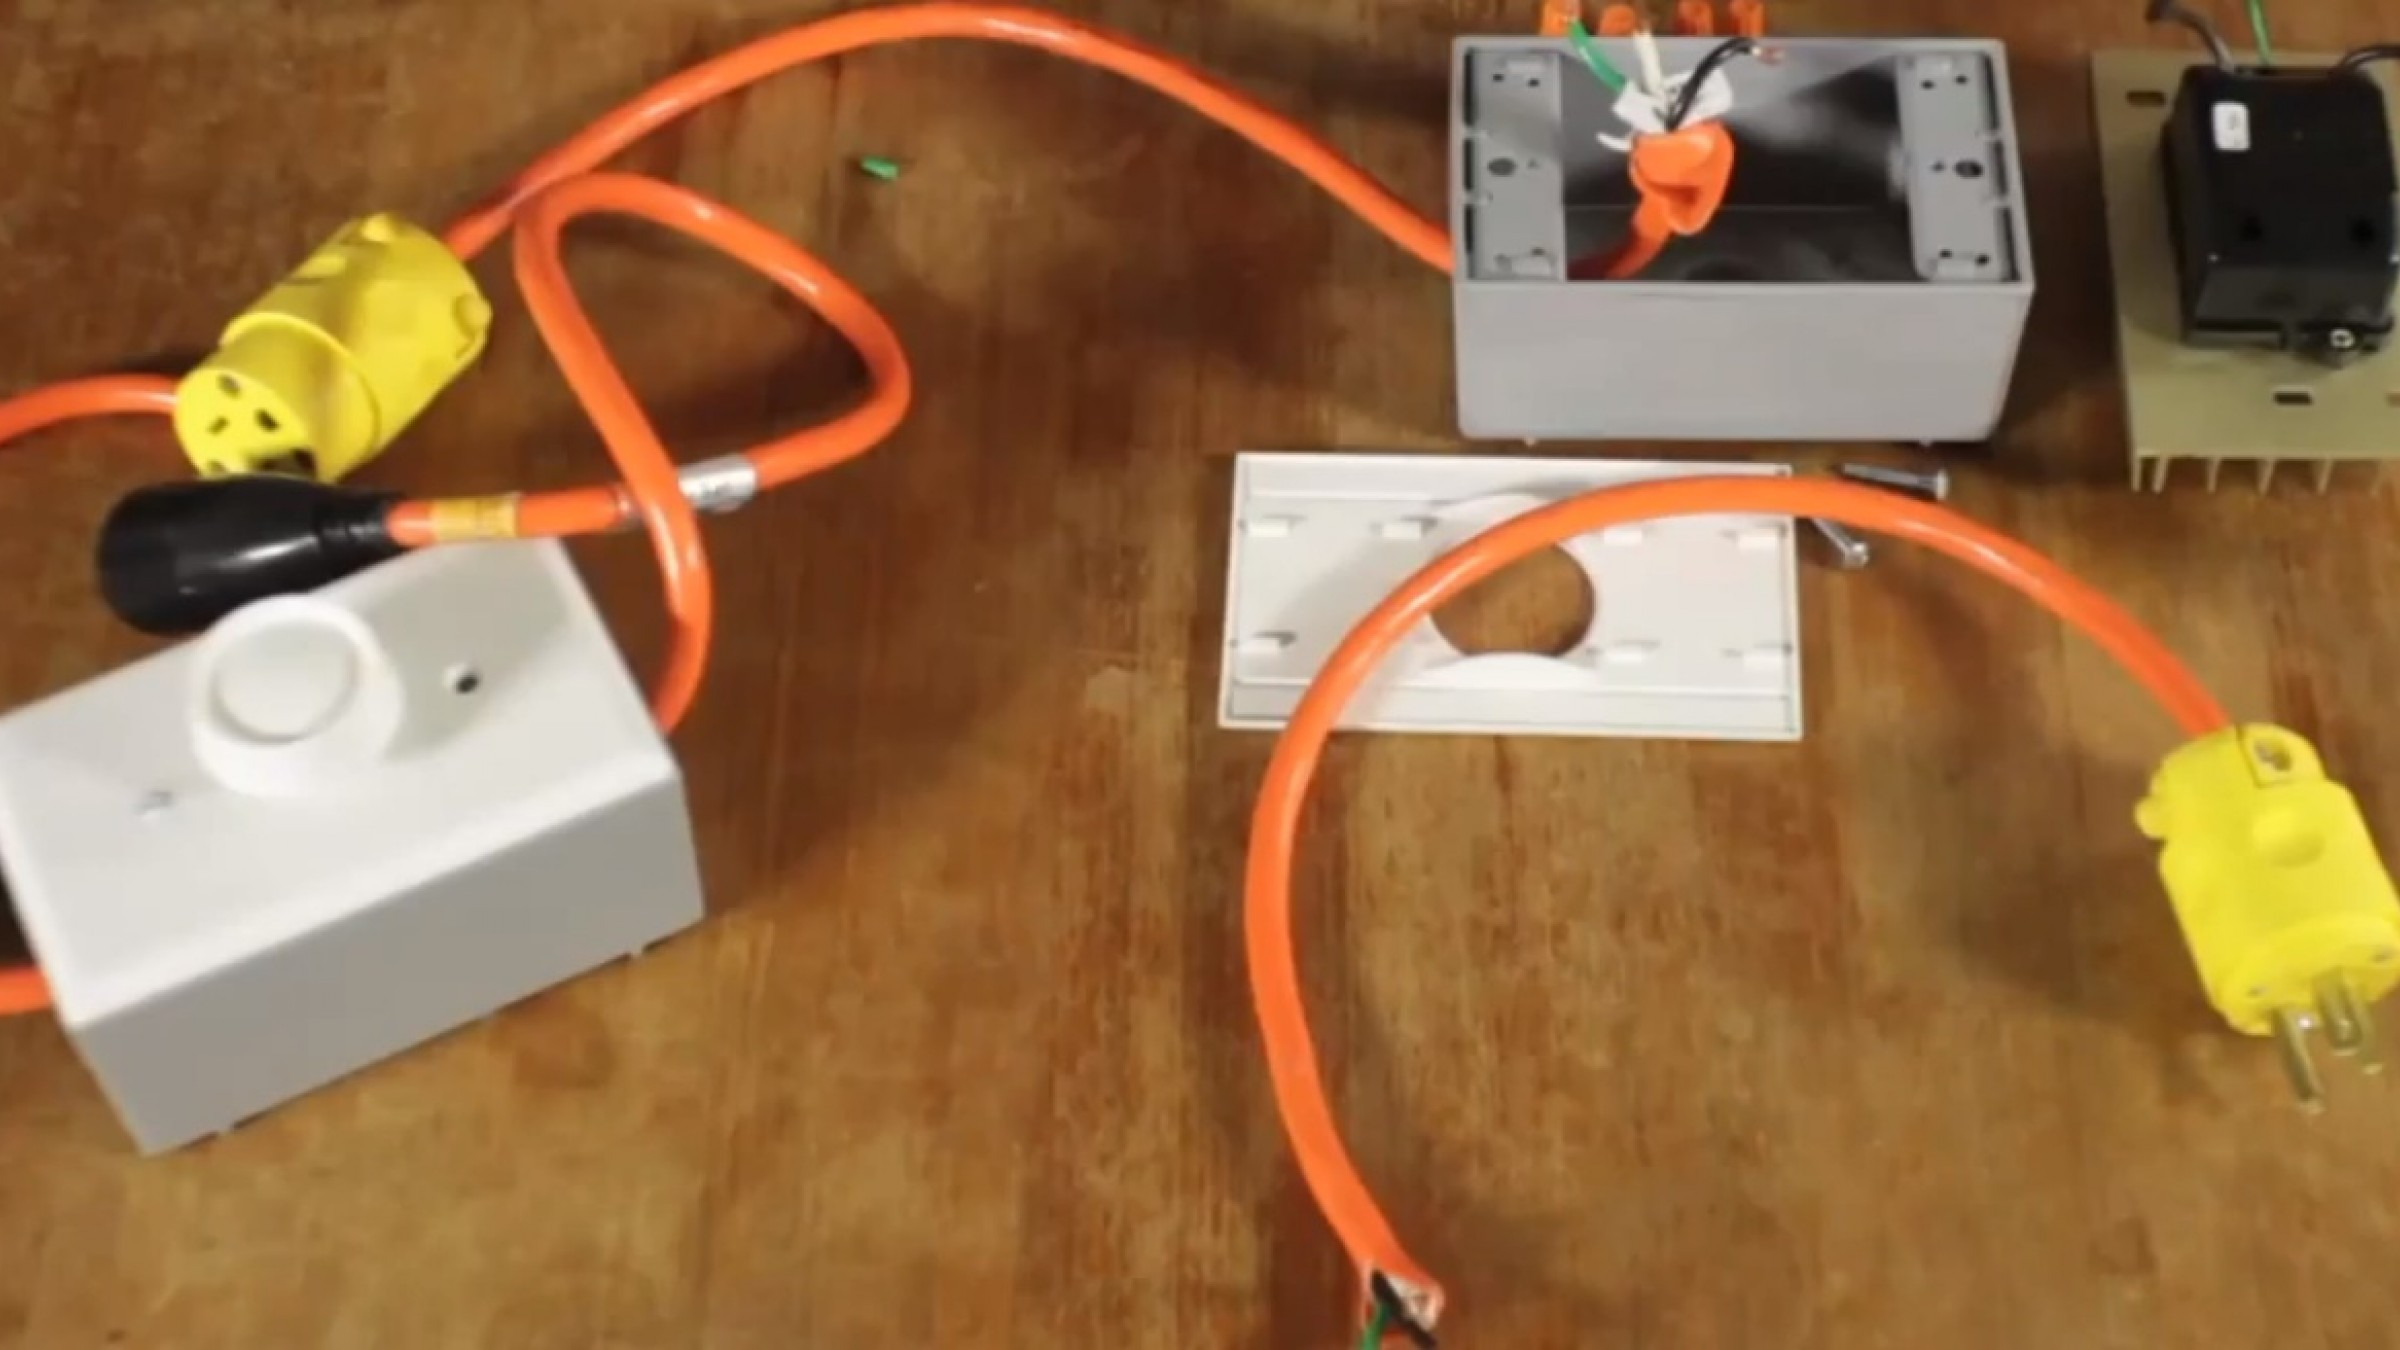 How To Make Cheap Diy Dimmer Switches For Your Film Lights 3 Way Switch Dim